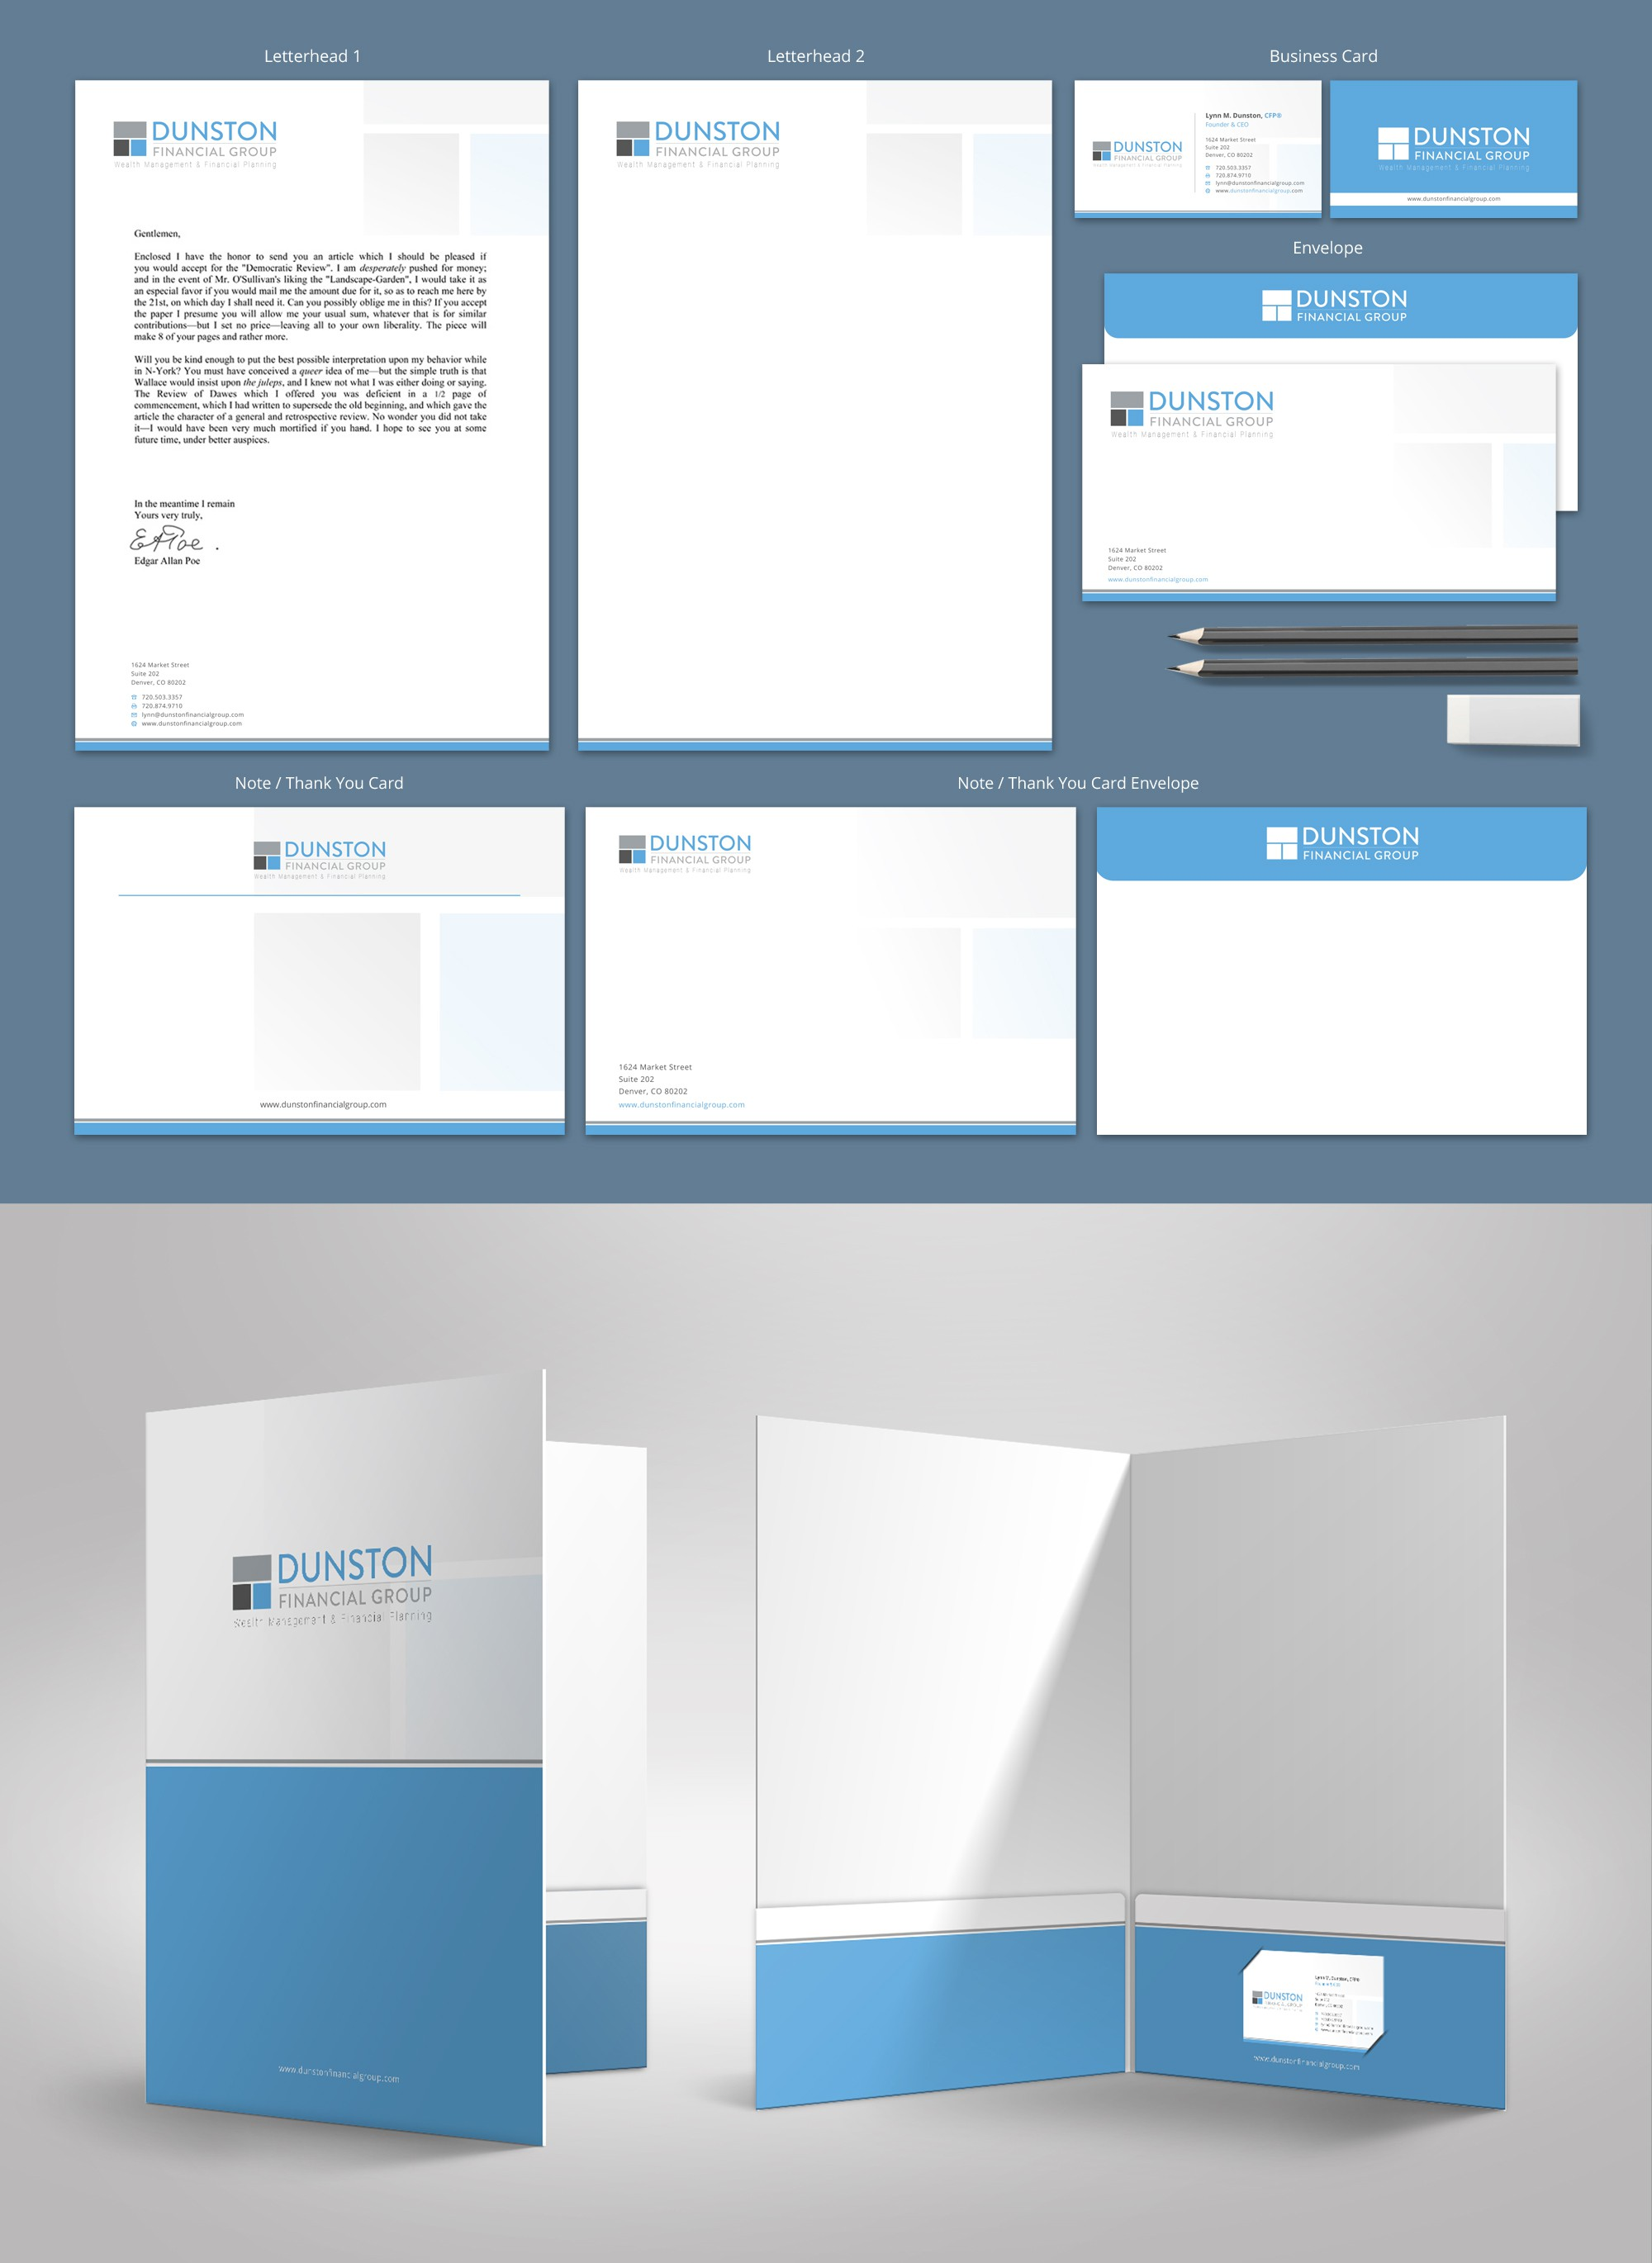 Create Business Card, Letterhead, & Note Card for Modern Financial Planning Firm